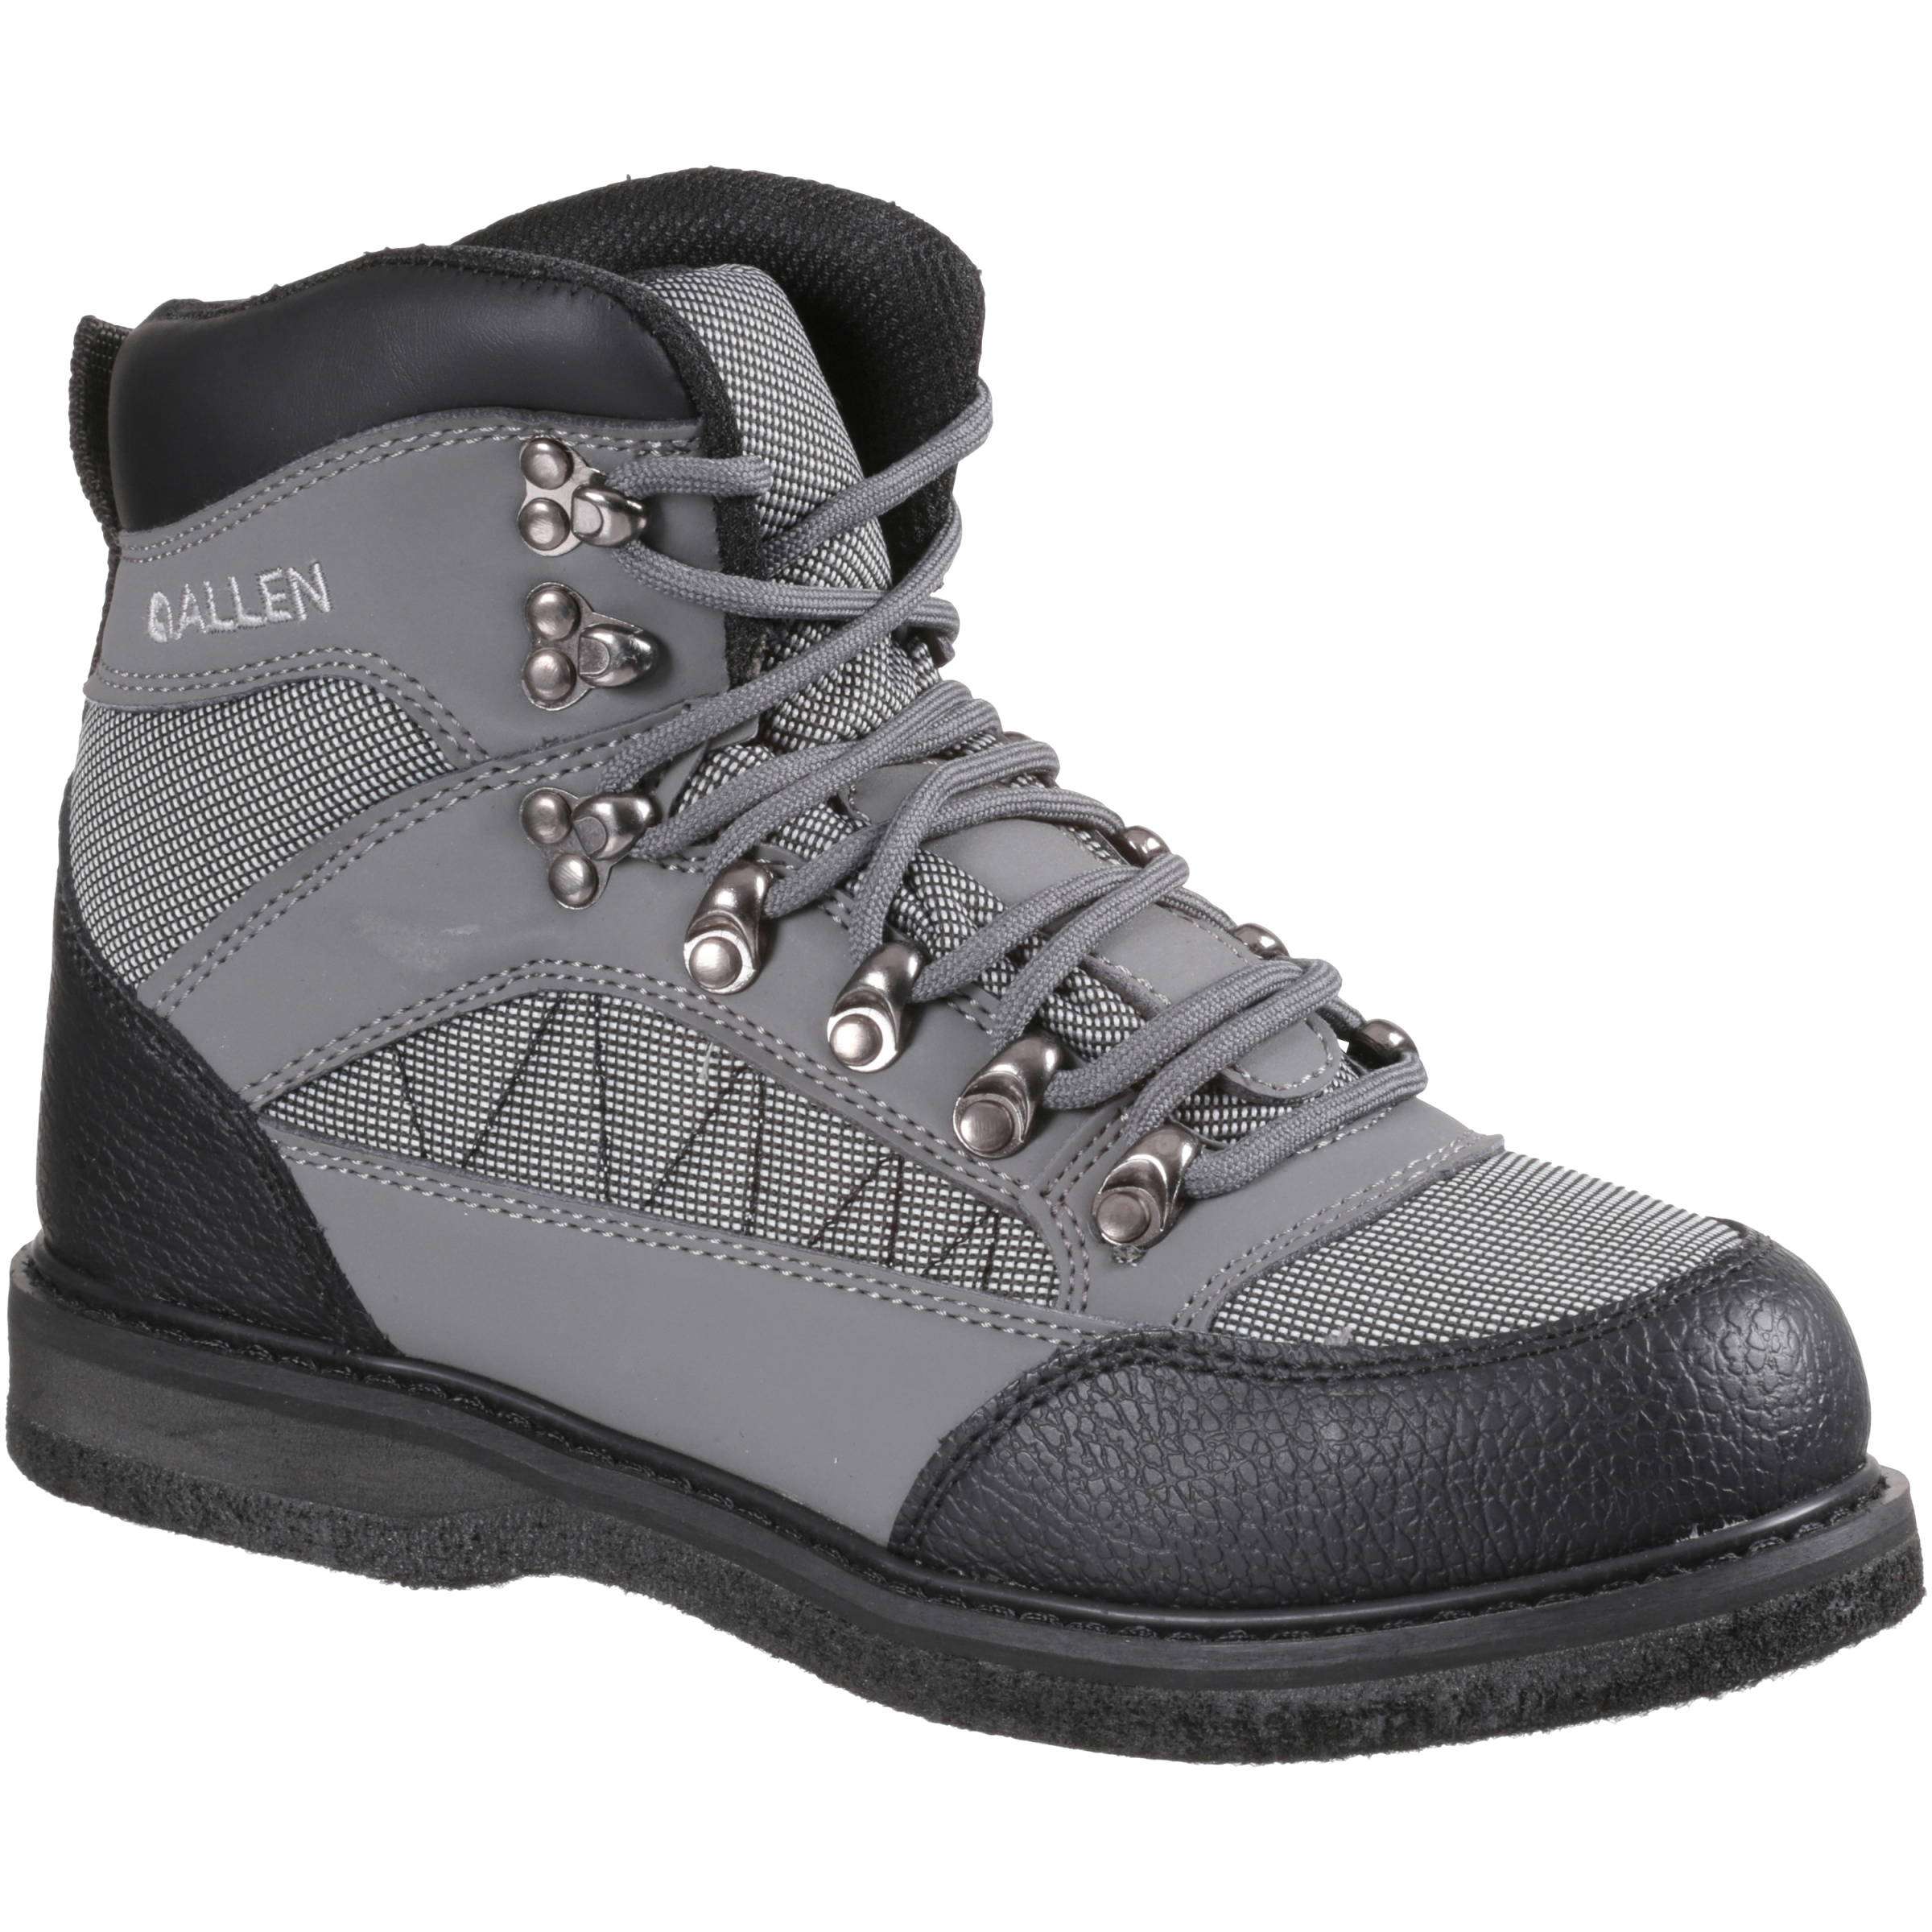 Allen Granite Men's River Wading Boots by Allen Company, Inc.